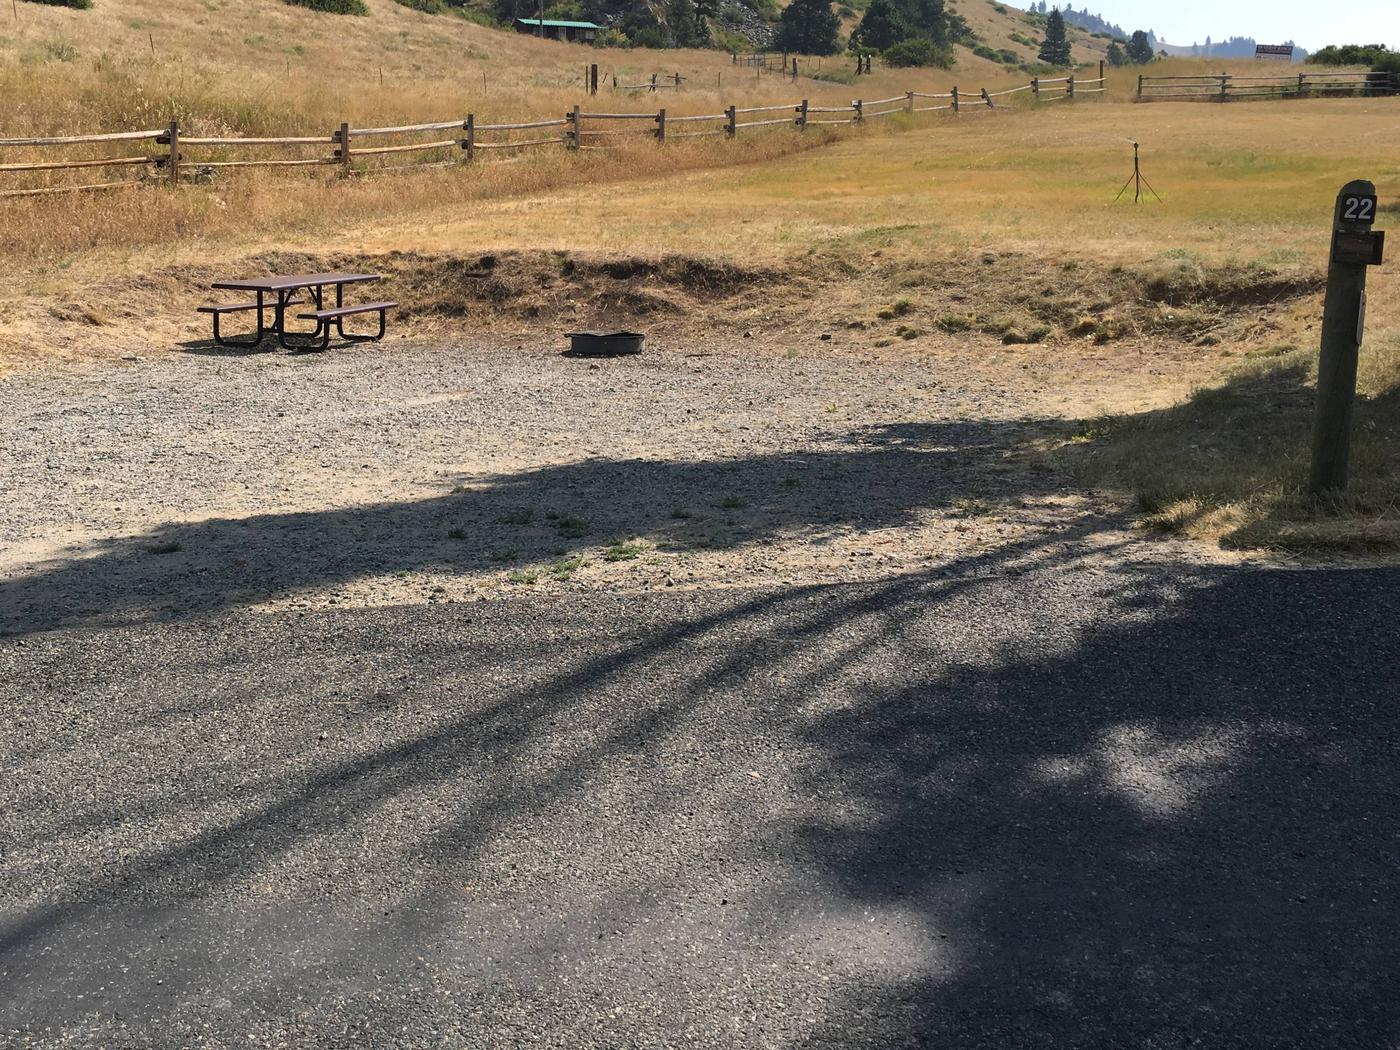 Site 22 BLM Holter Lake Campground. Paved access to campsite. Graveled campsite with picnic table and fire pit. Tree nearby campsite. Beartooth Road above the campsite.Site 22 BLM Holter Lake Campground.